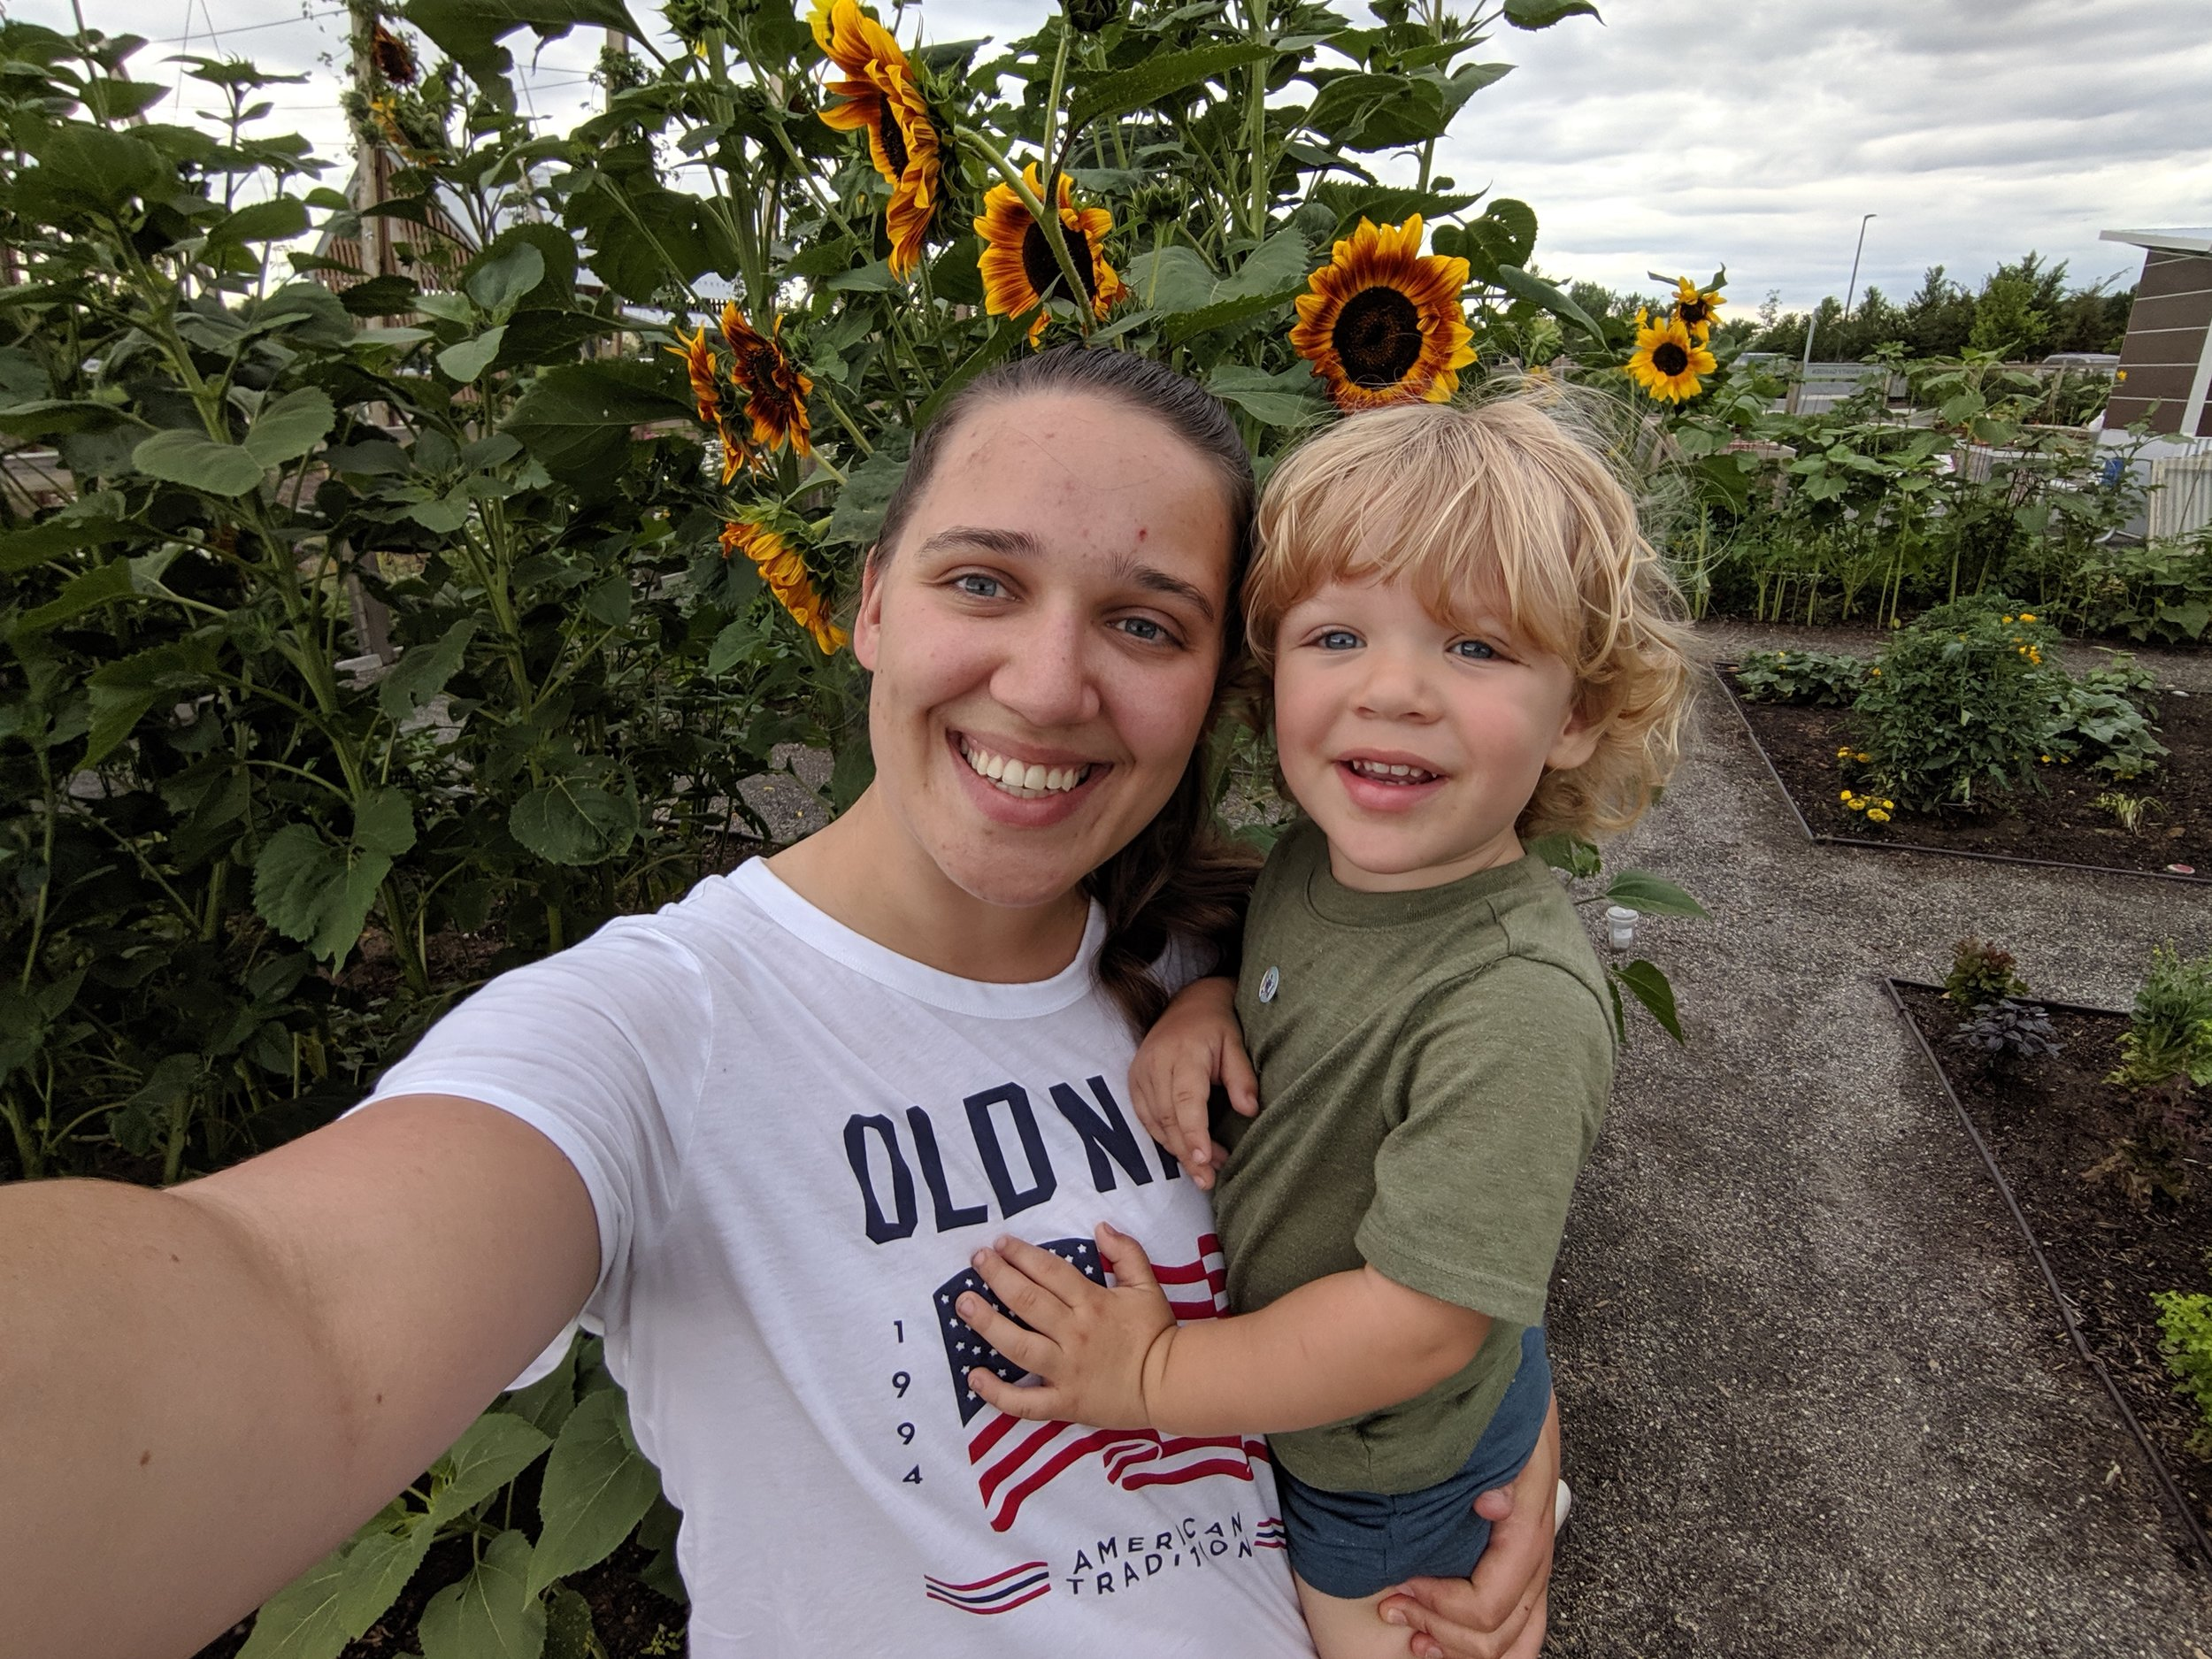 Gus and I snuck into the Community Garden at Twin Silo park in Fort Collins, Colorado to take photos with the sunflowers.